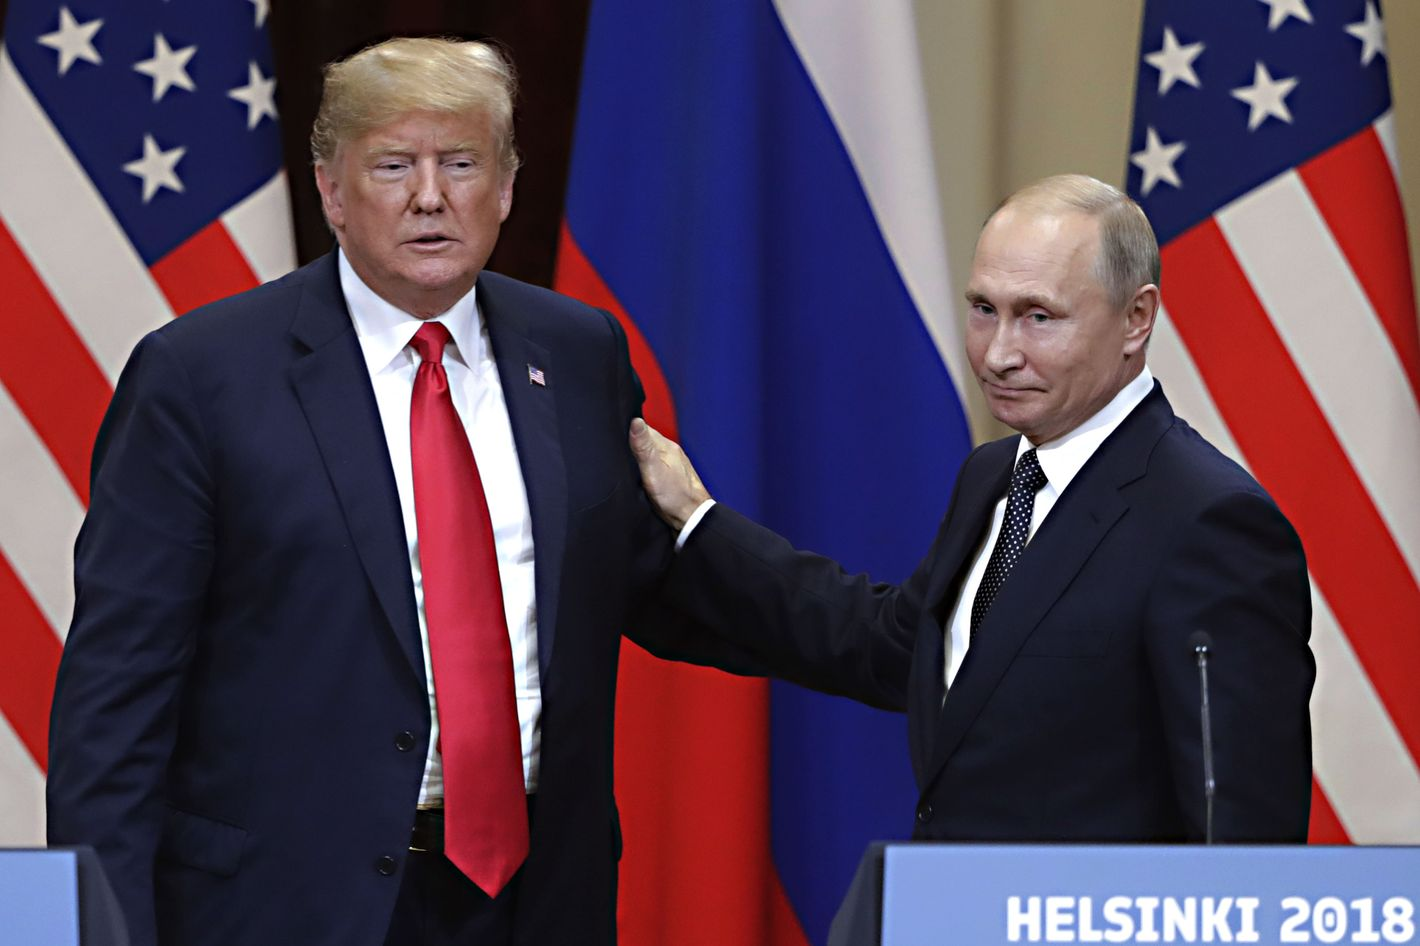 Max Miller: Putin Gives Trump An A+ Review